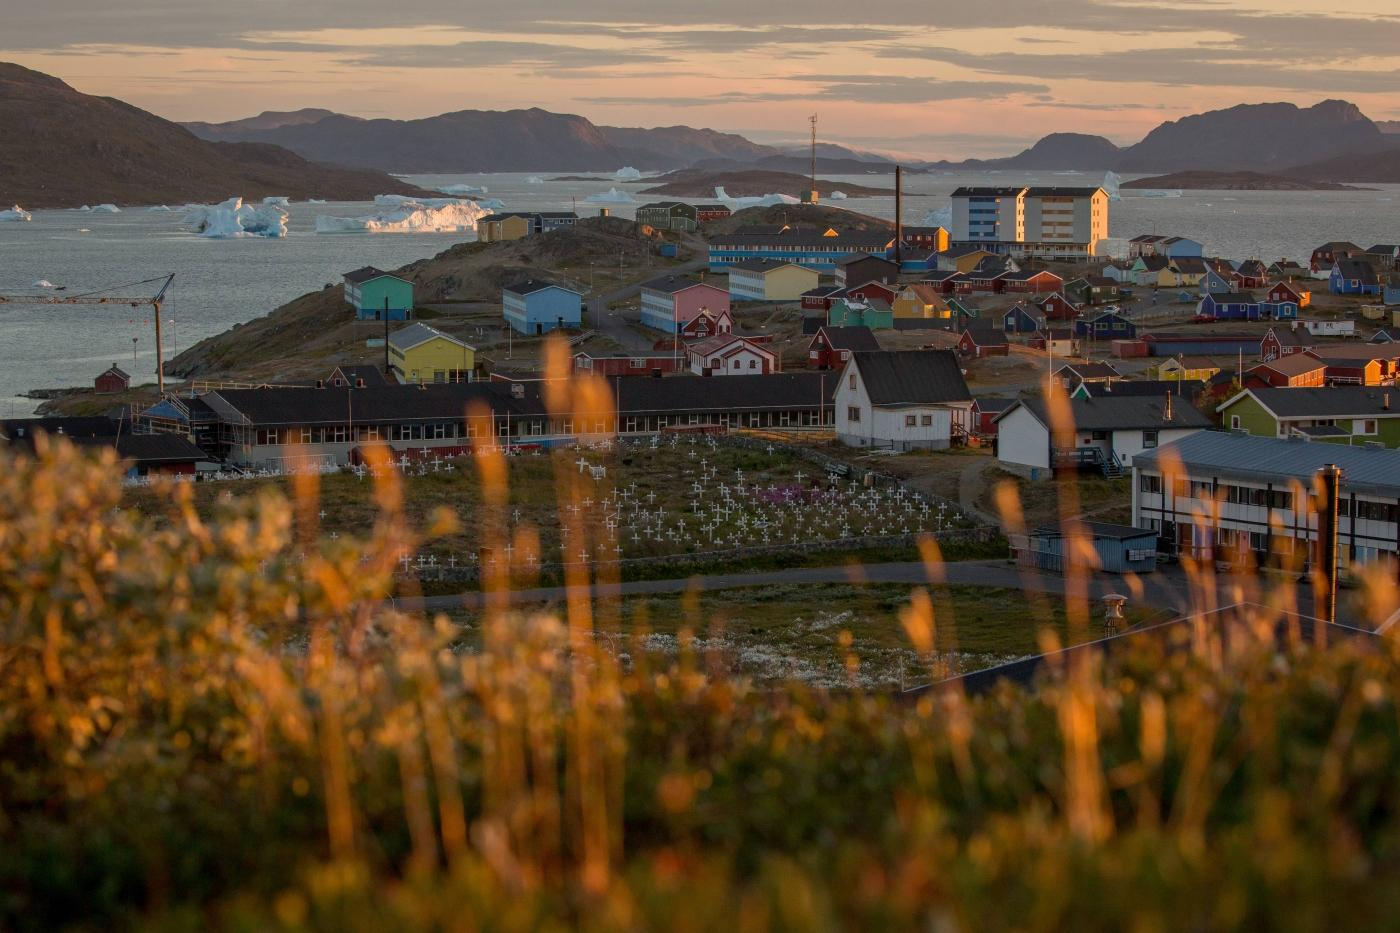 Sunset over Narsaq and the bay with icebergs in South Greenland. Sunset over Narsaq and the bay with icebergs in South Greenland. Photo by Mads Pihl